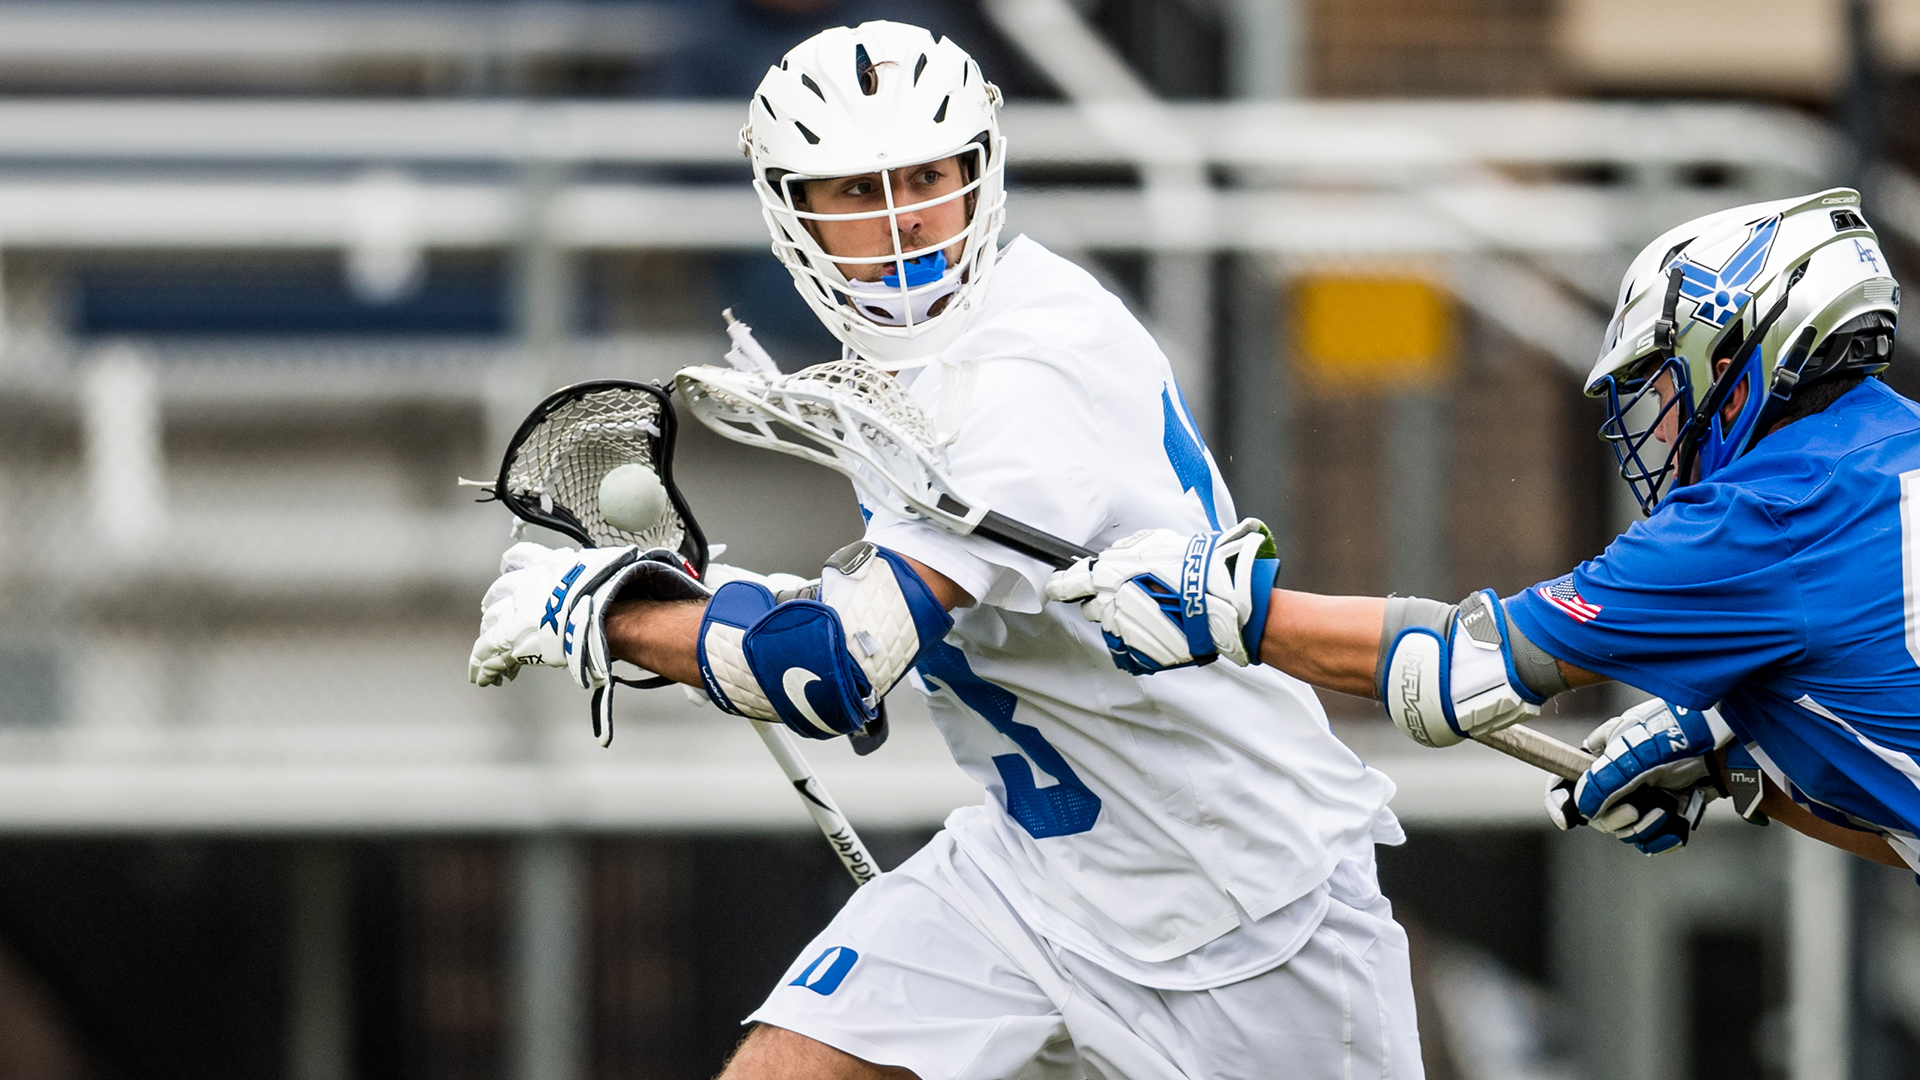 Duke Men's Lacrosse takes on Air Force in the season opener at Koskinen Stadium in Durham, NC - February 1, 2020